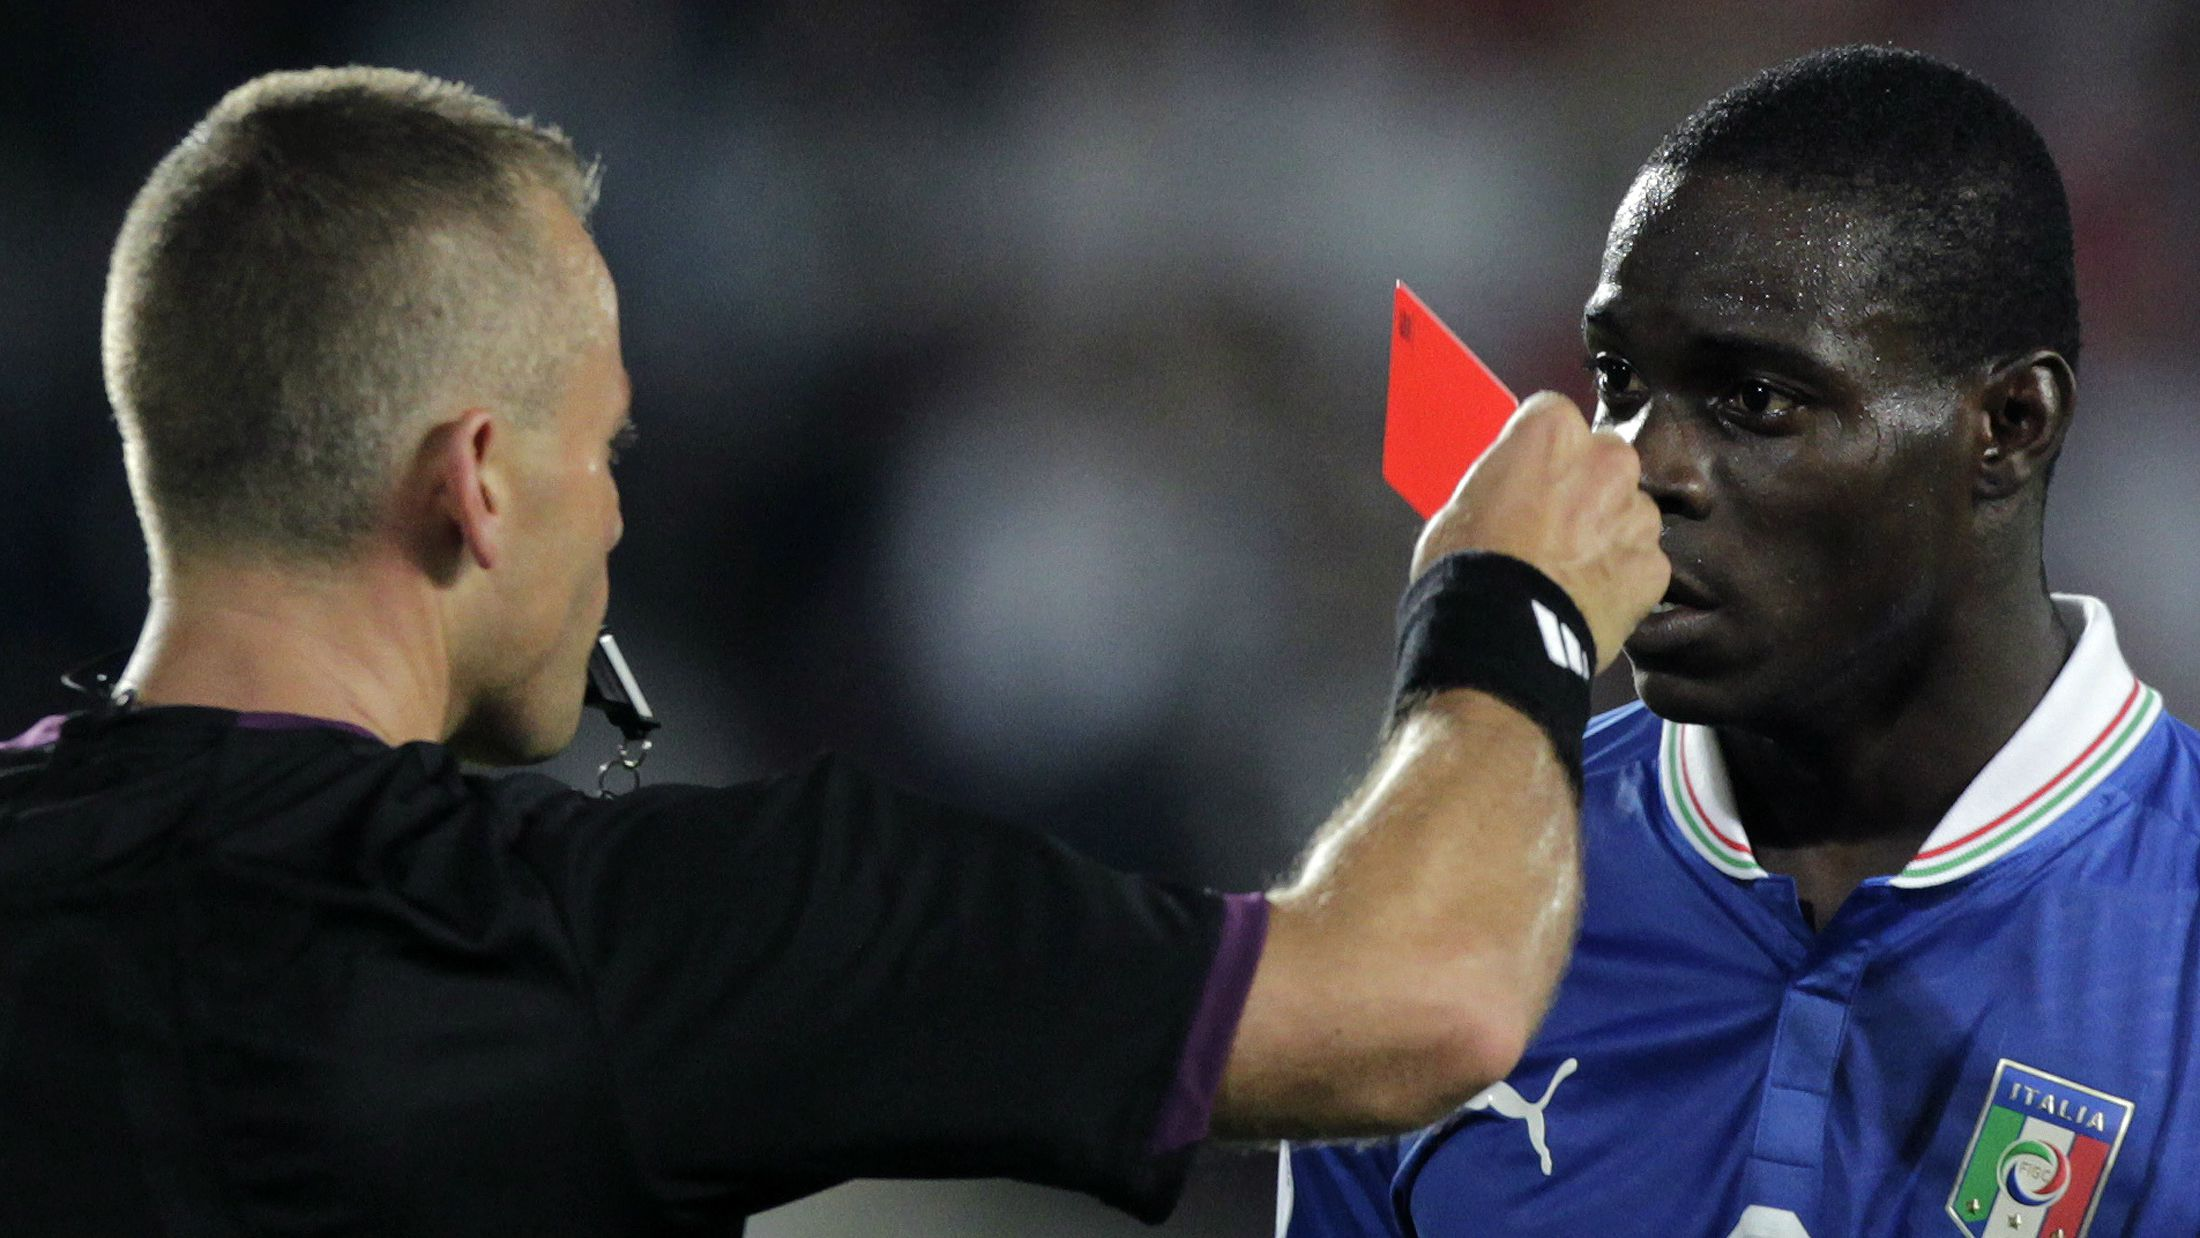 Italy's Mario Balotelli is given a red card.